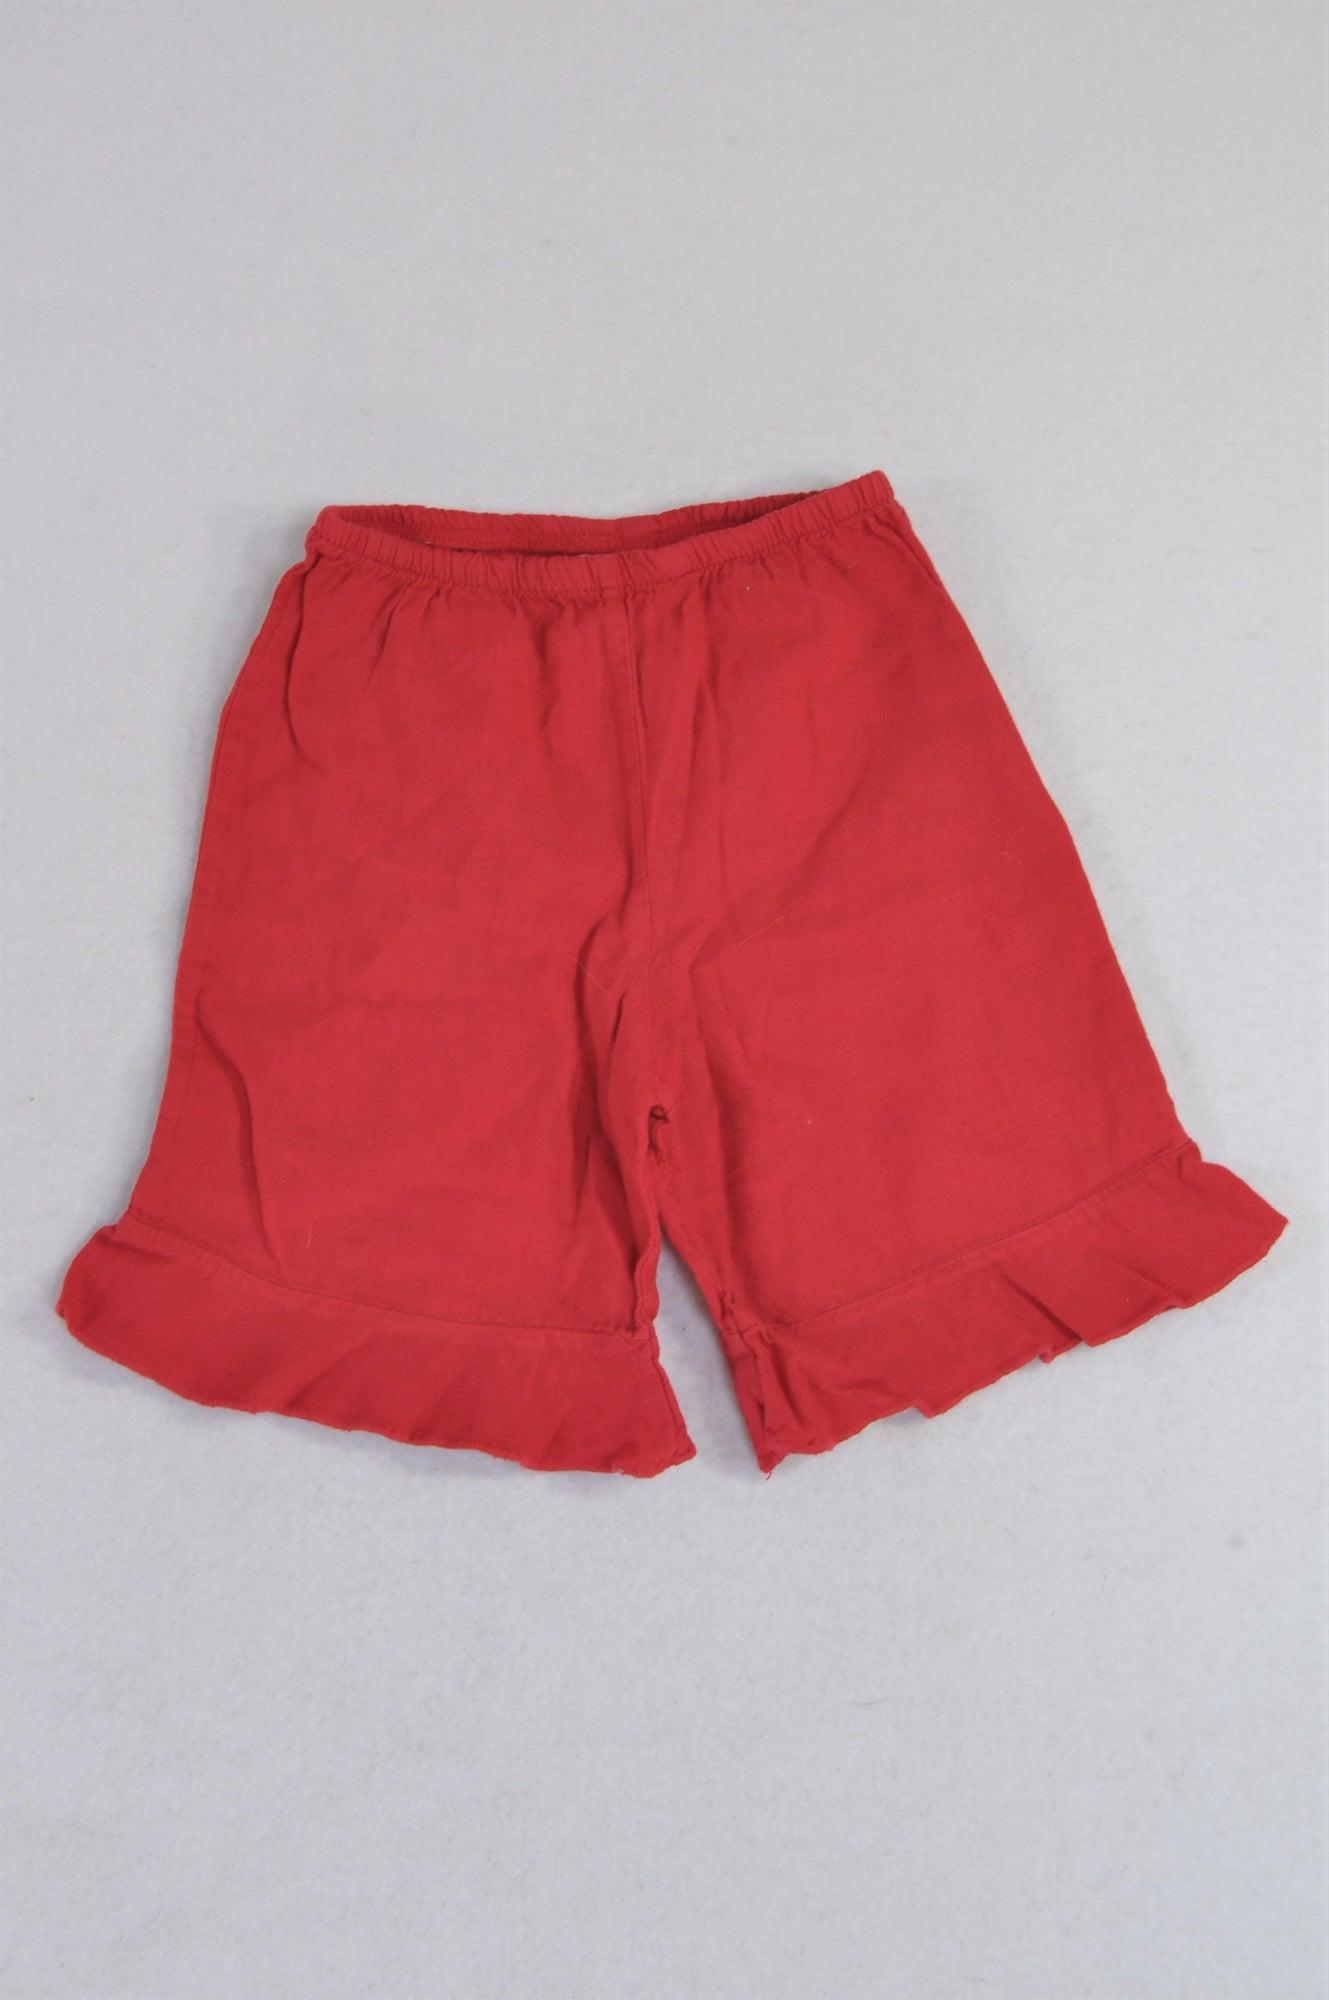 Keedo Red Lightweight Pants Girls 3-6 months